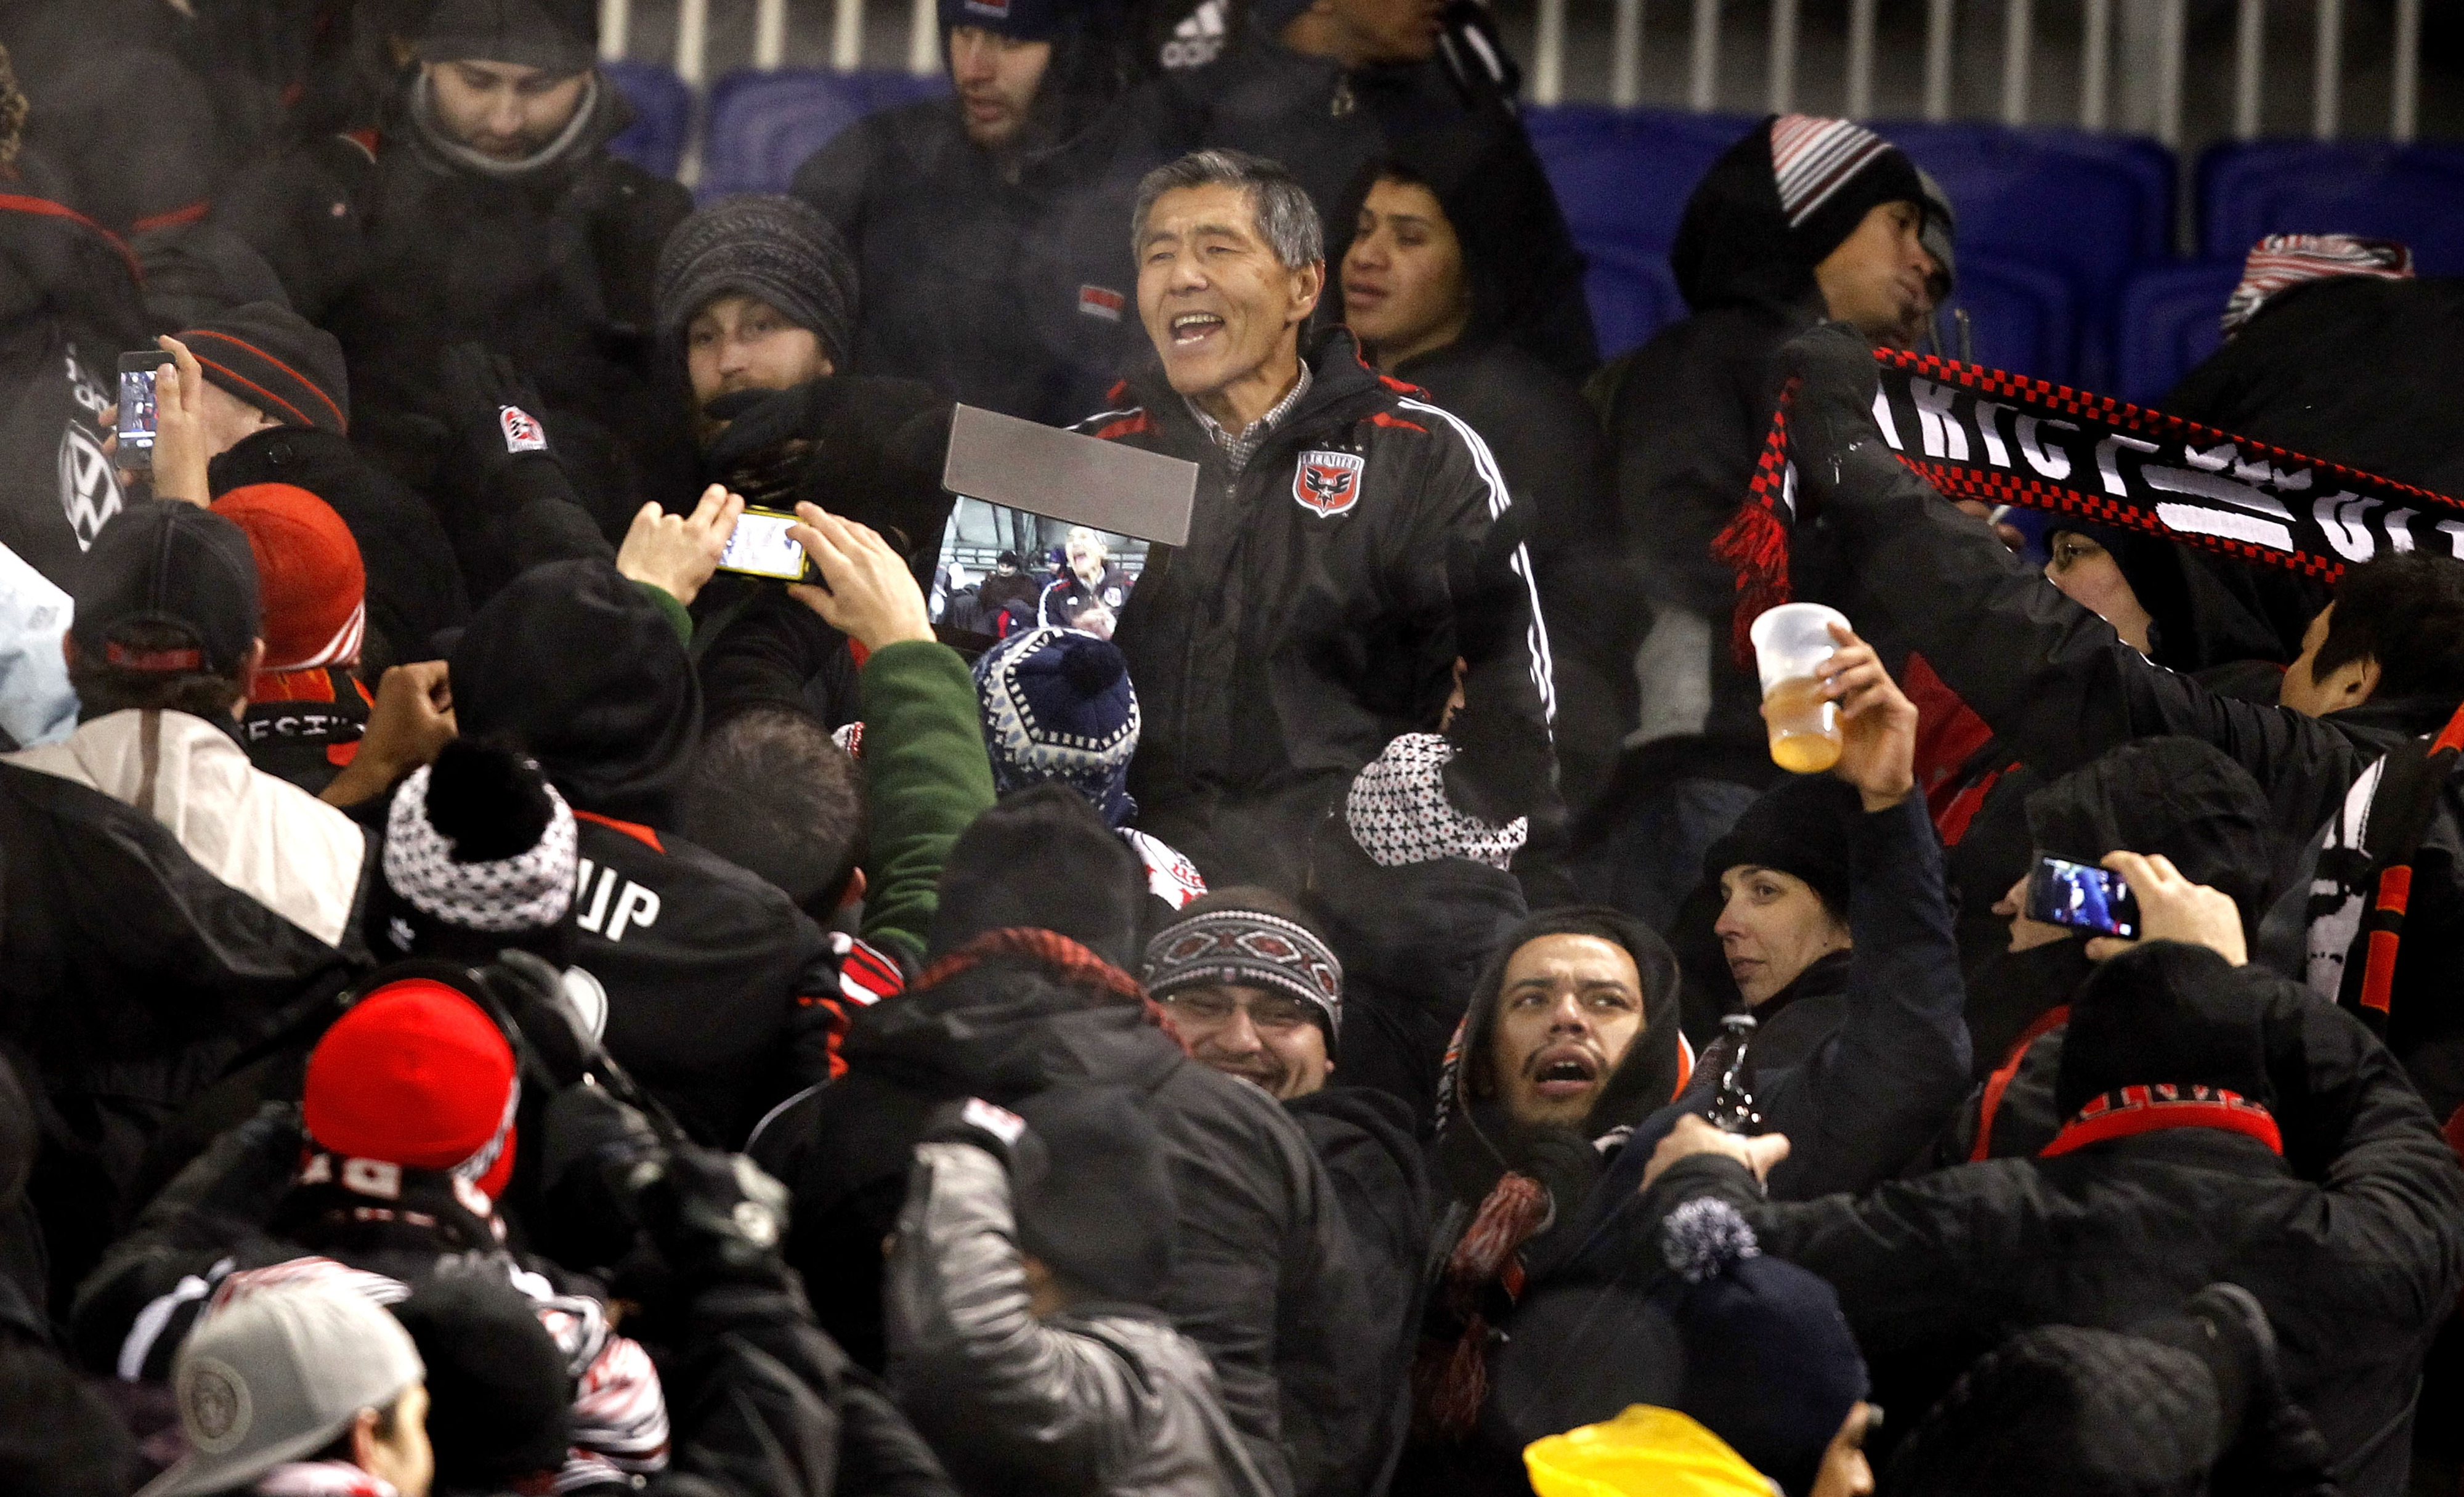 D.C. United owner Will Chang greets fans after the postponement was announced Wednesday night.